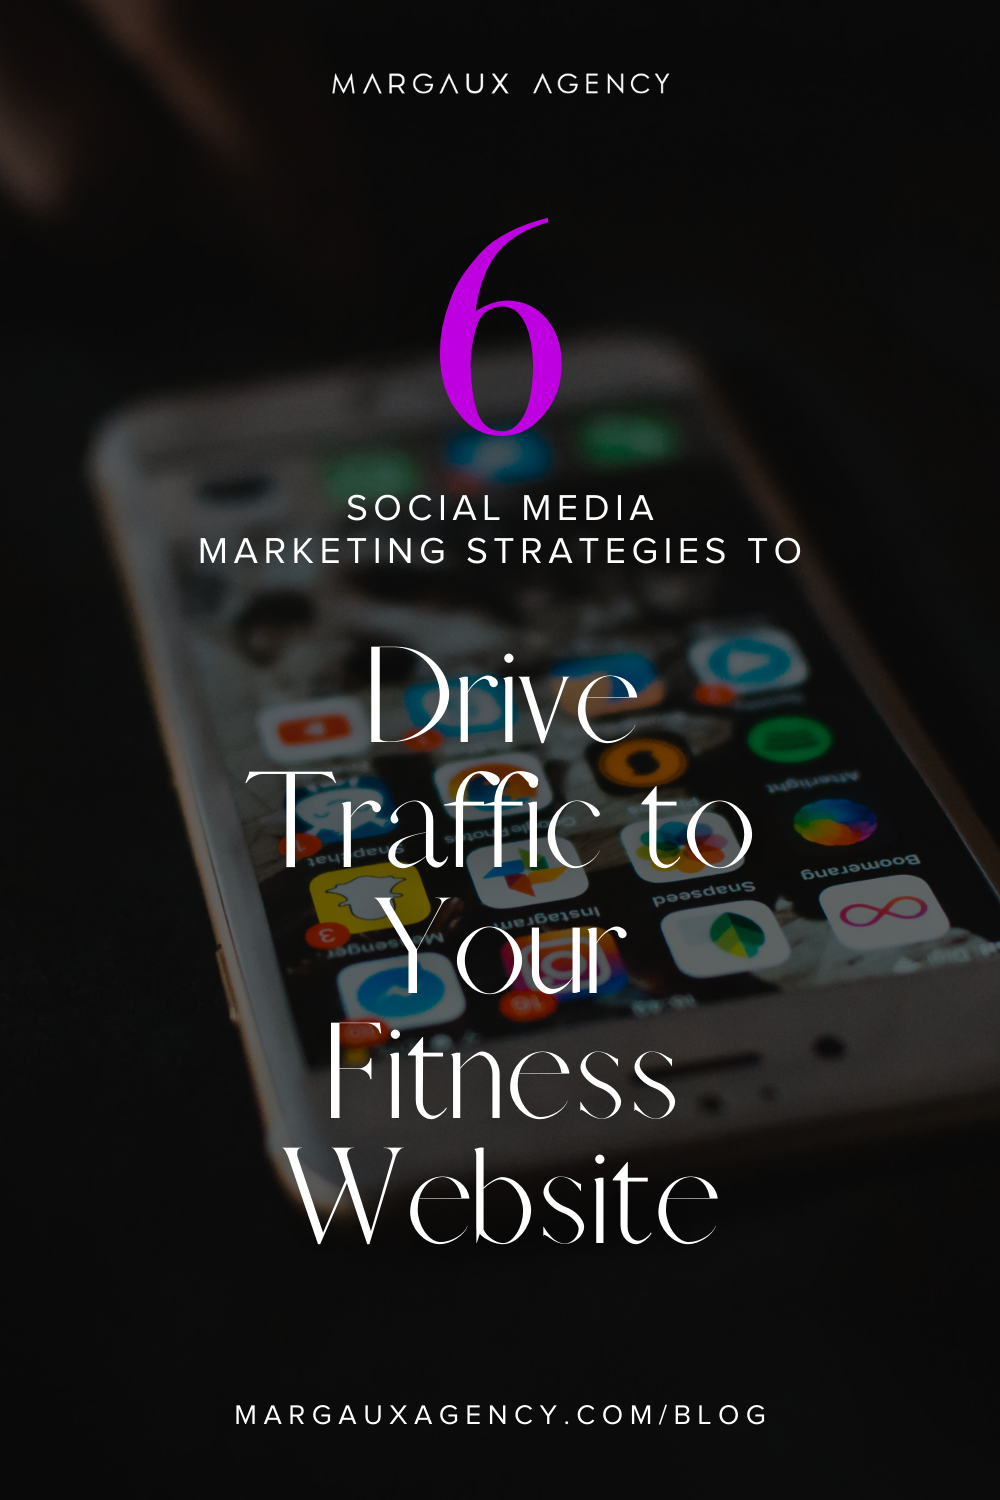 Traffic to Fitness Website